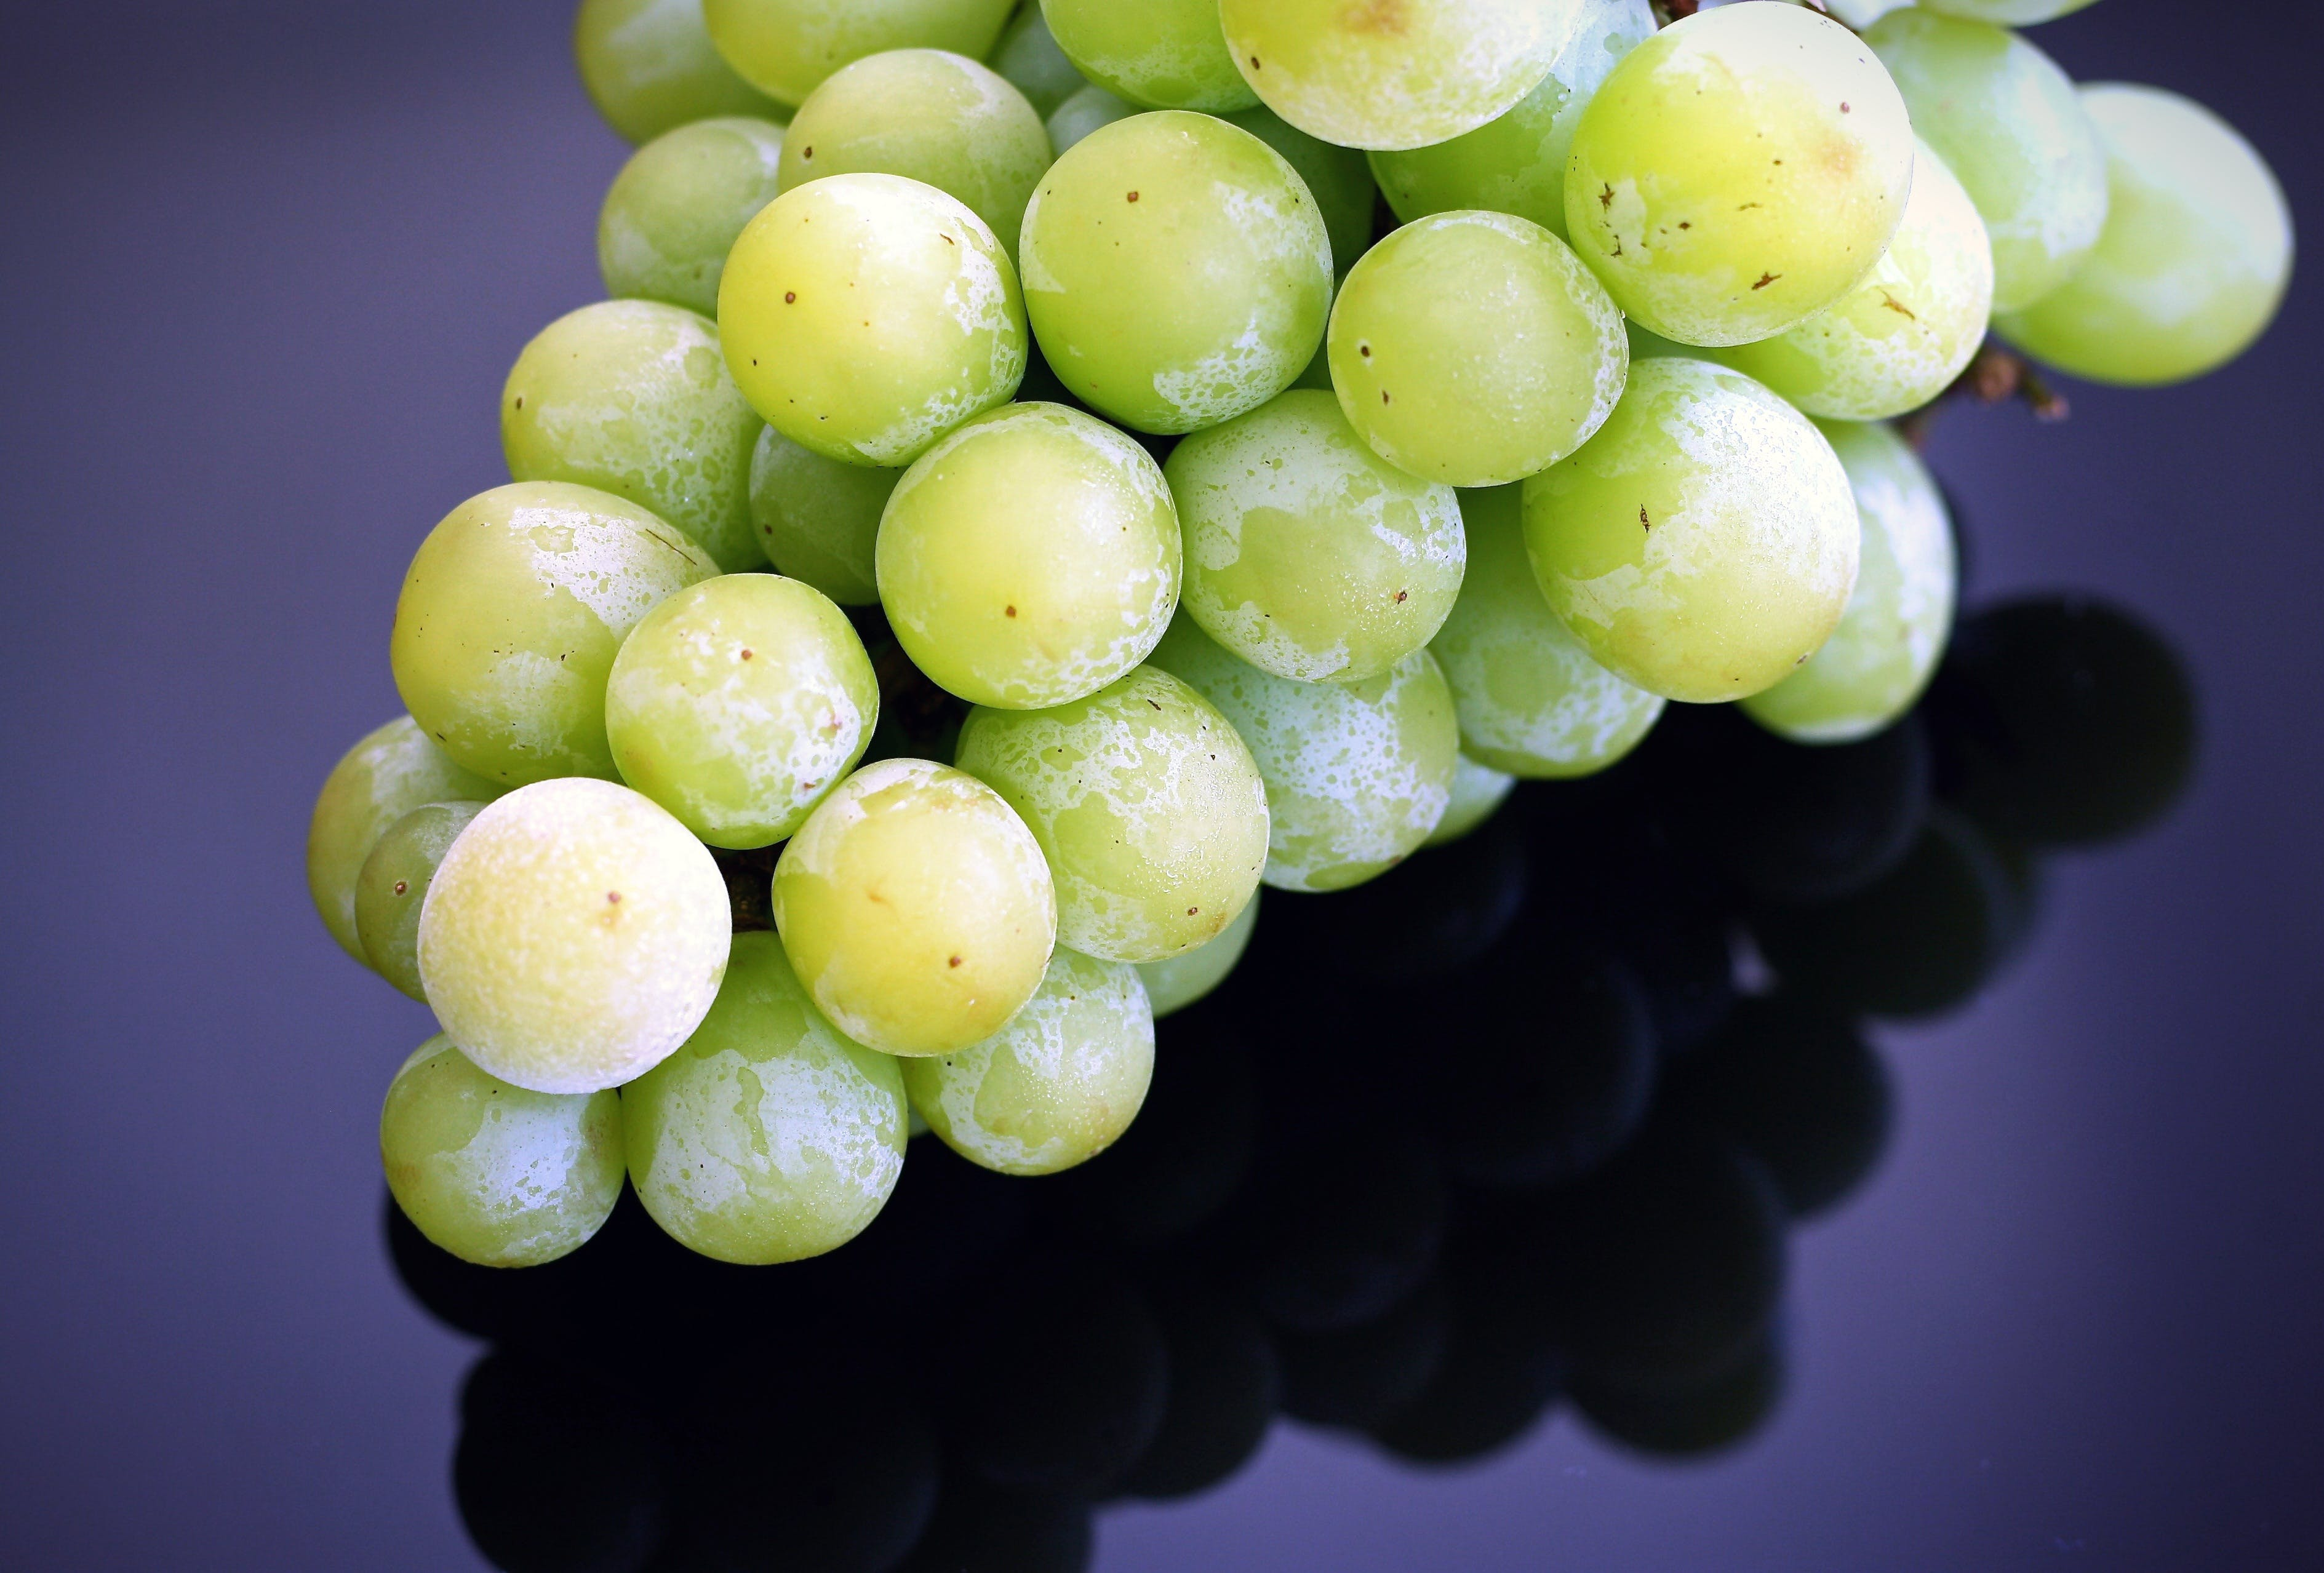 Green Grapes on Top of the Table